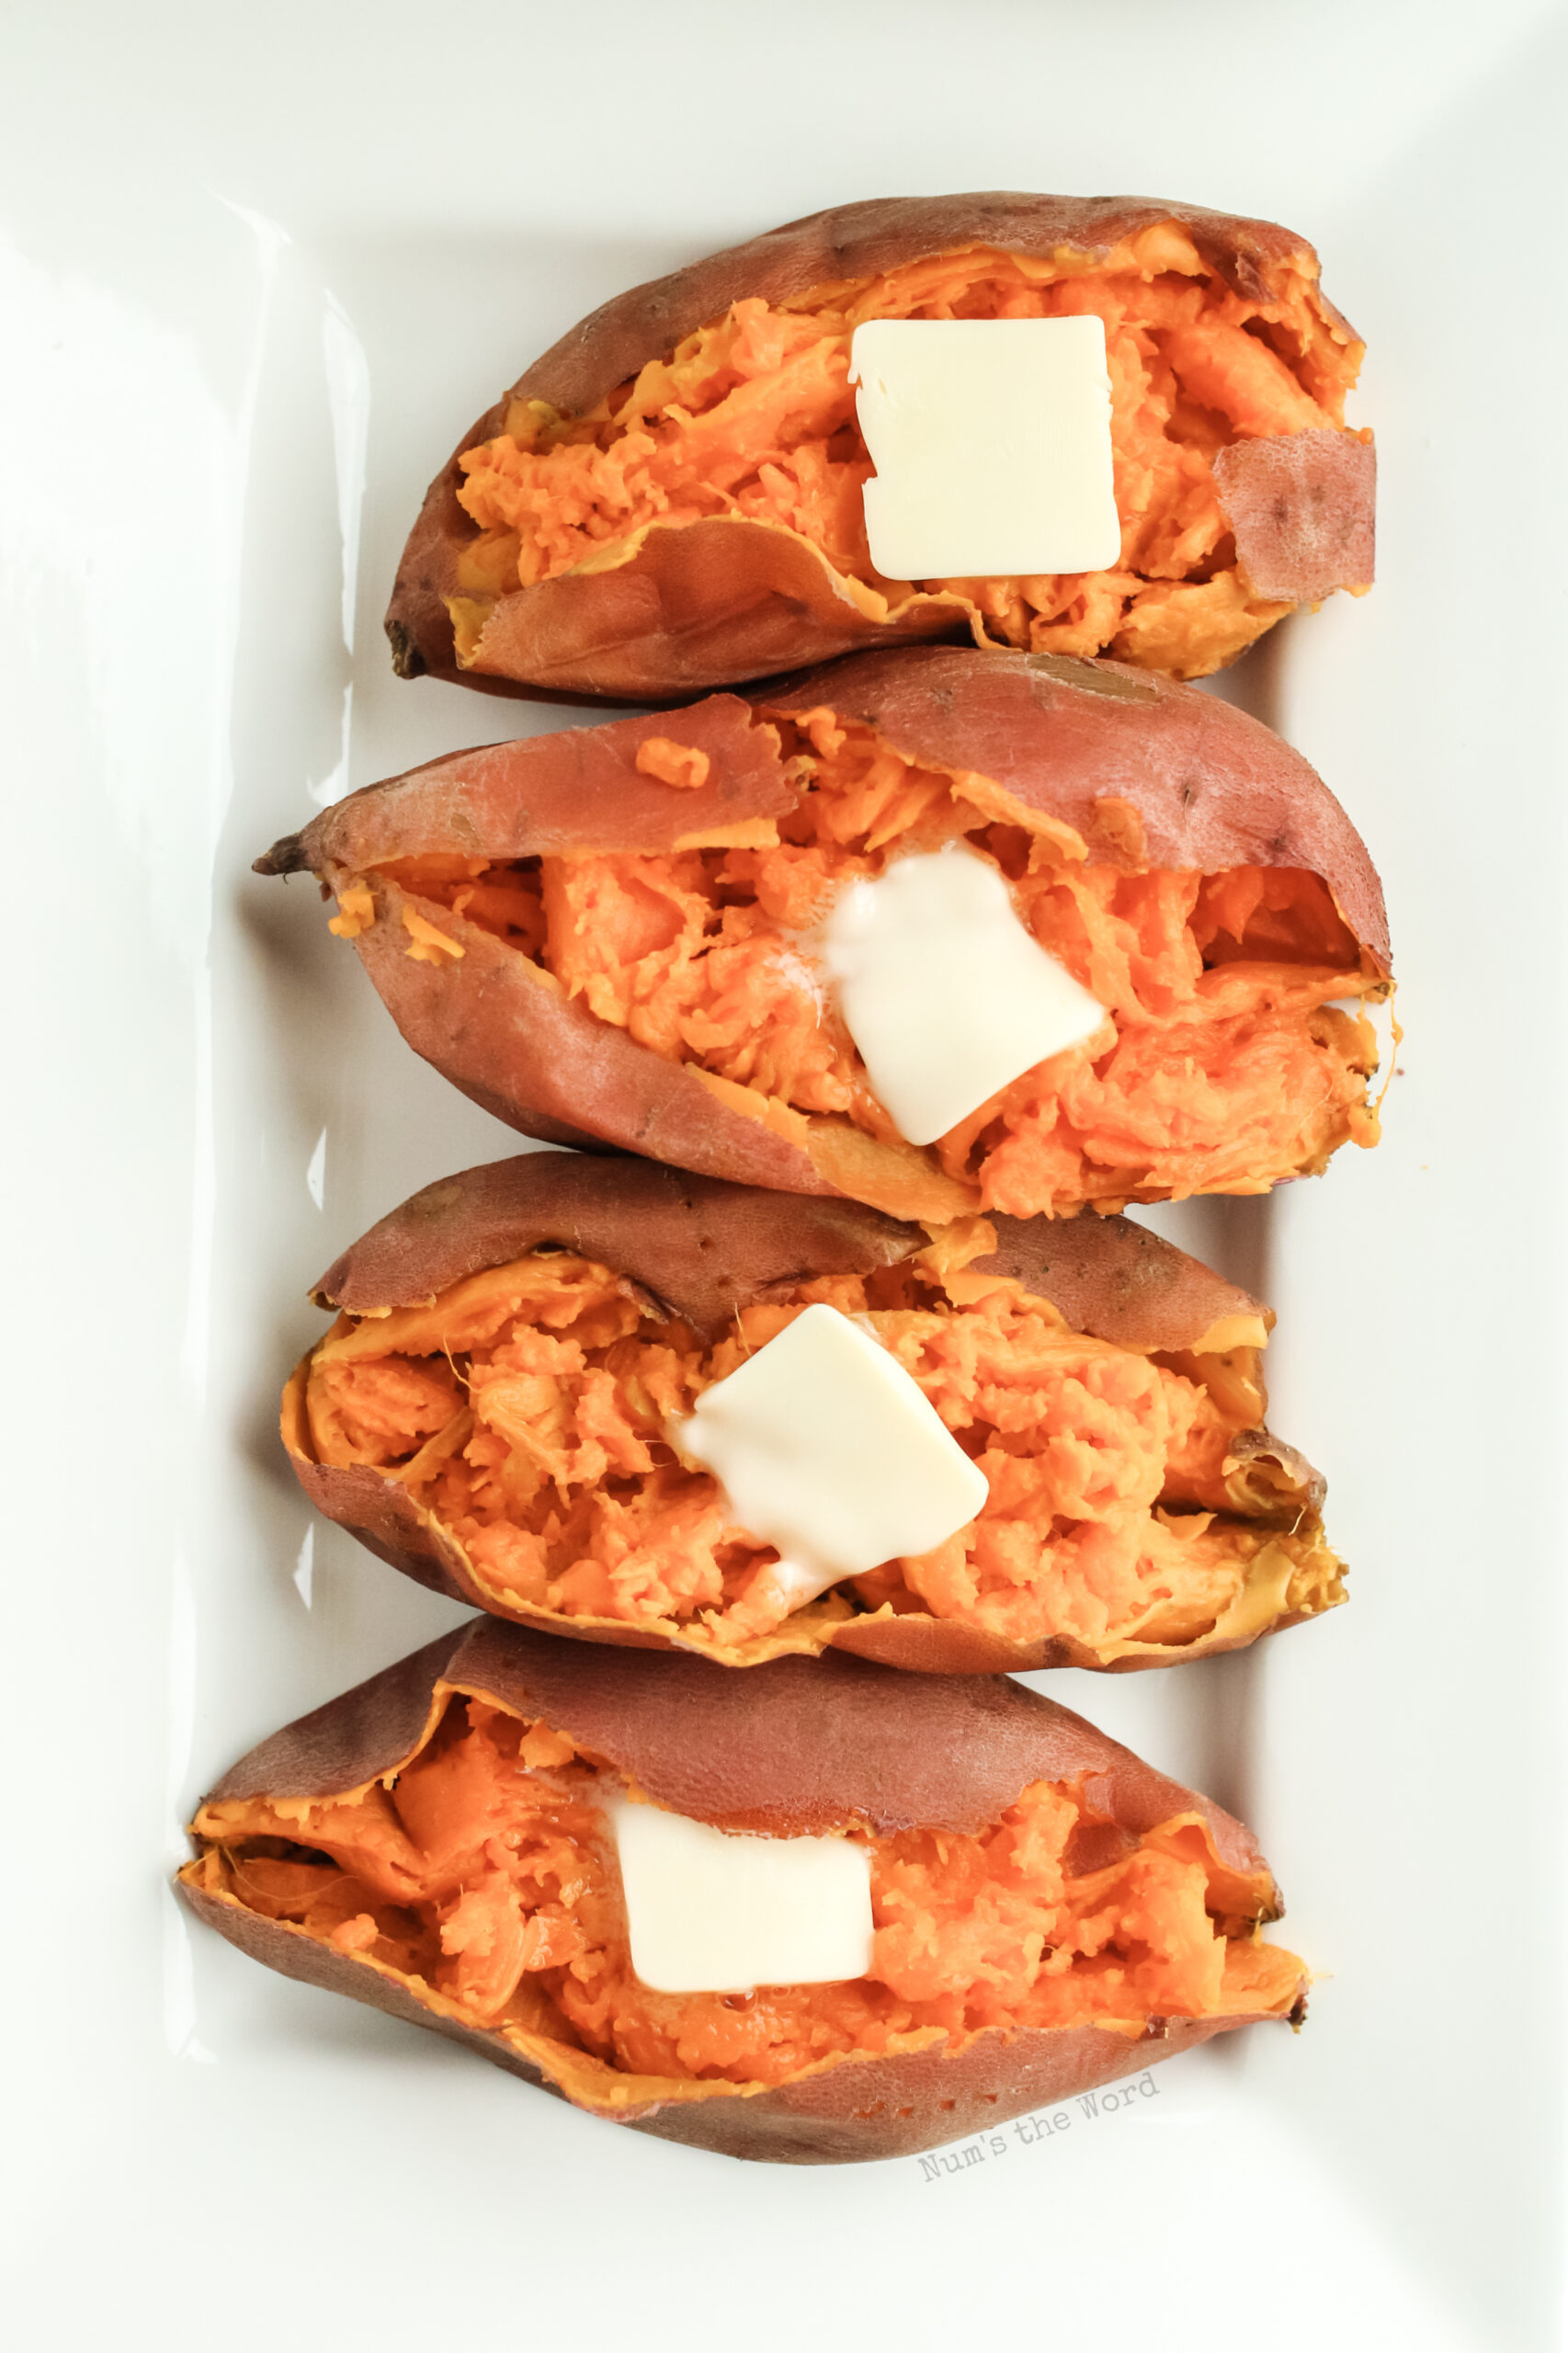 4 sweet potatoes on platter with dollops of butter. Image taken from the top down.